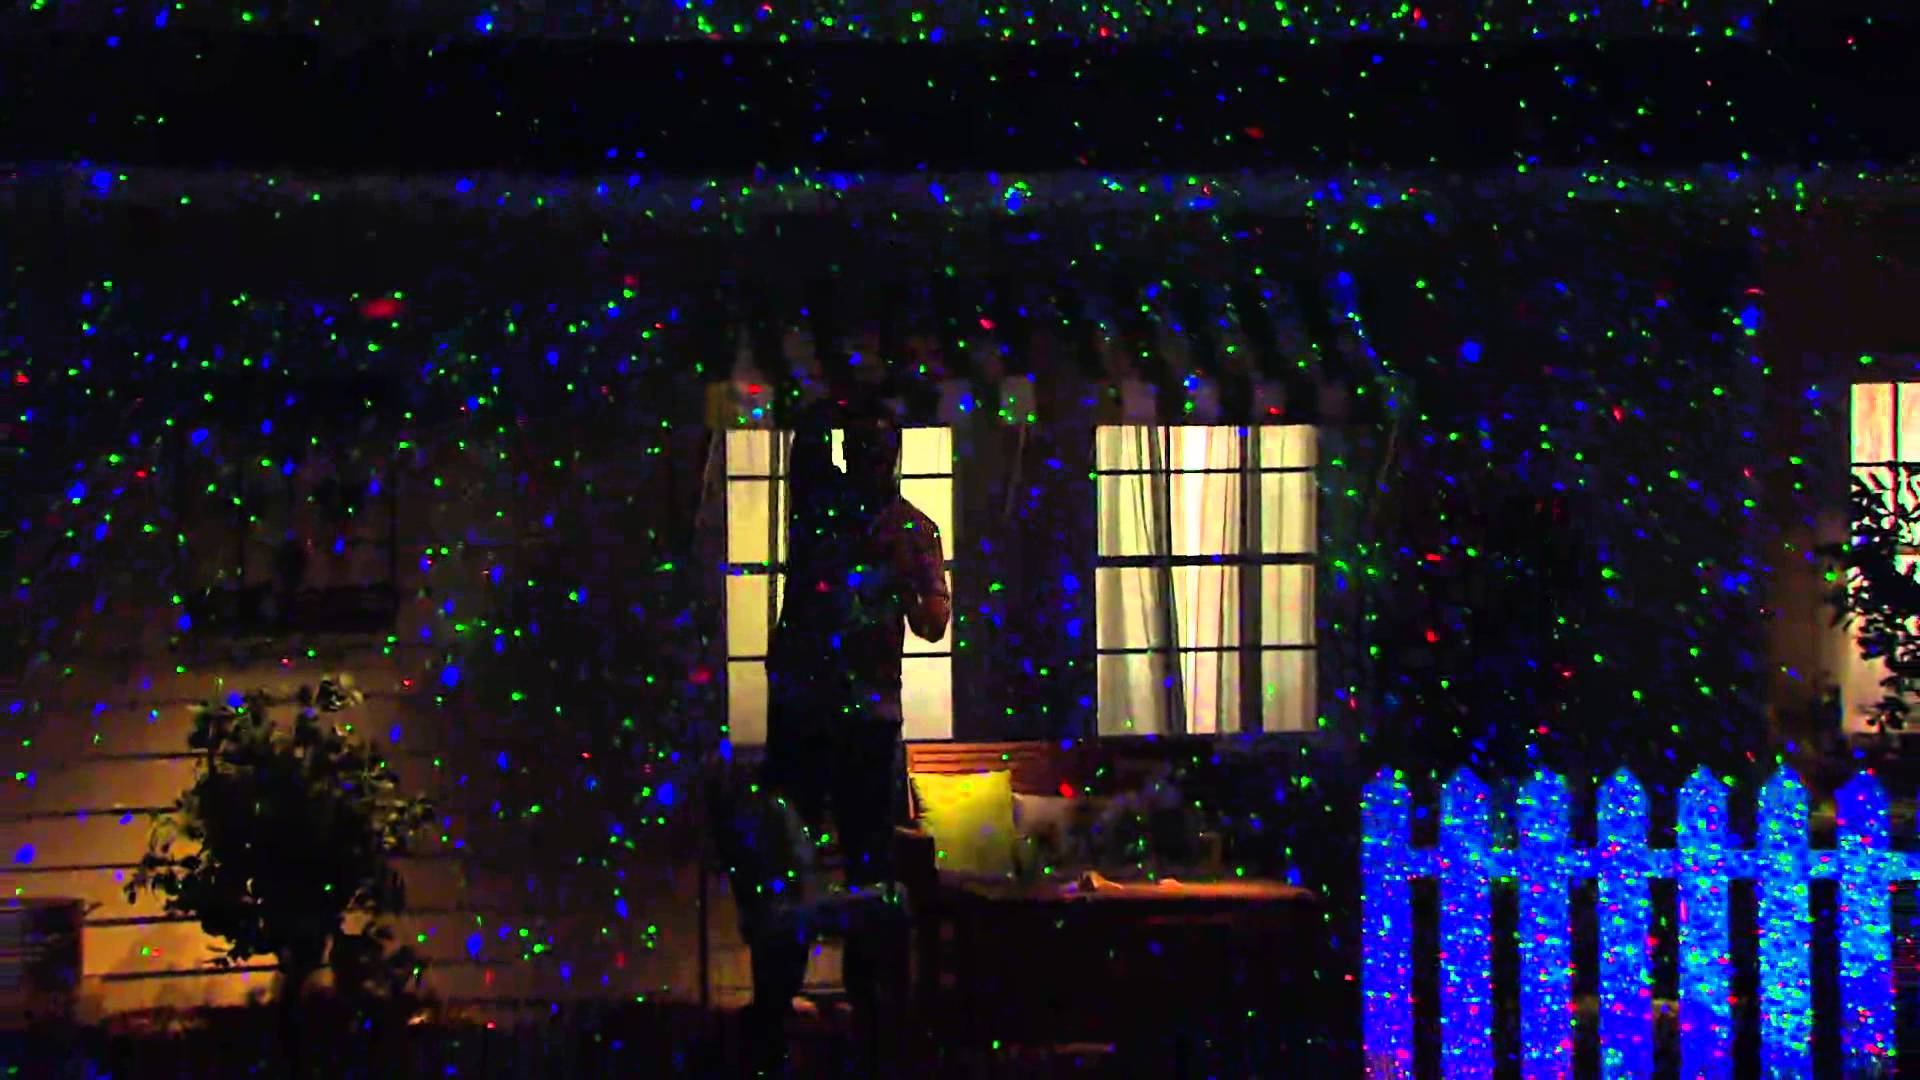 BlissLights – Great for decorating year round